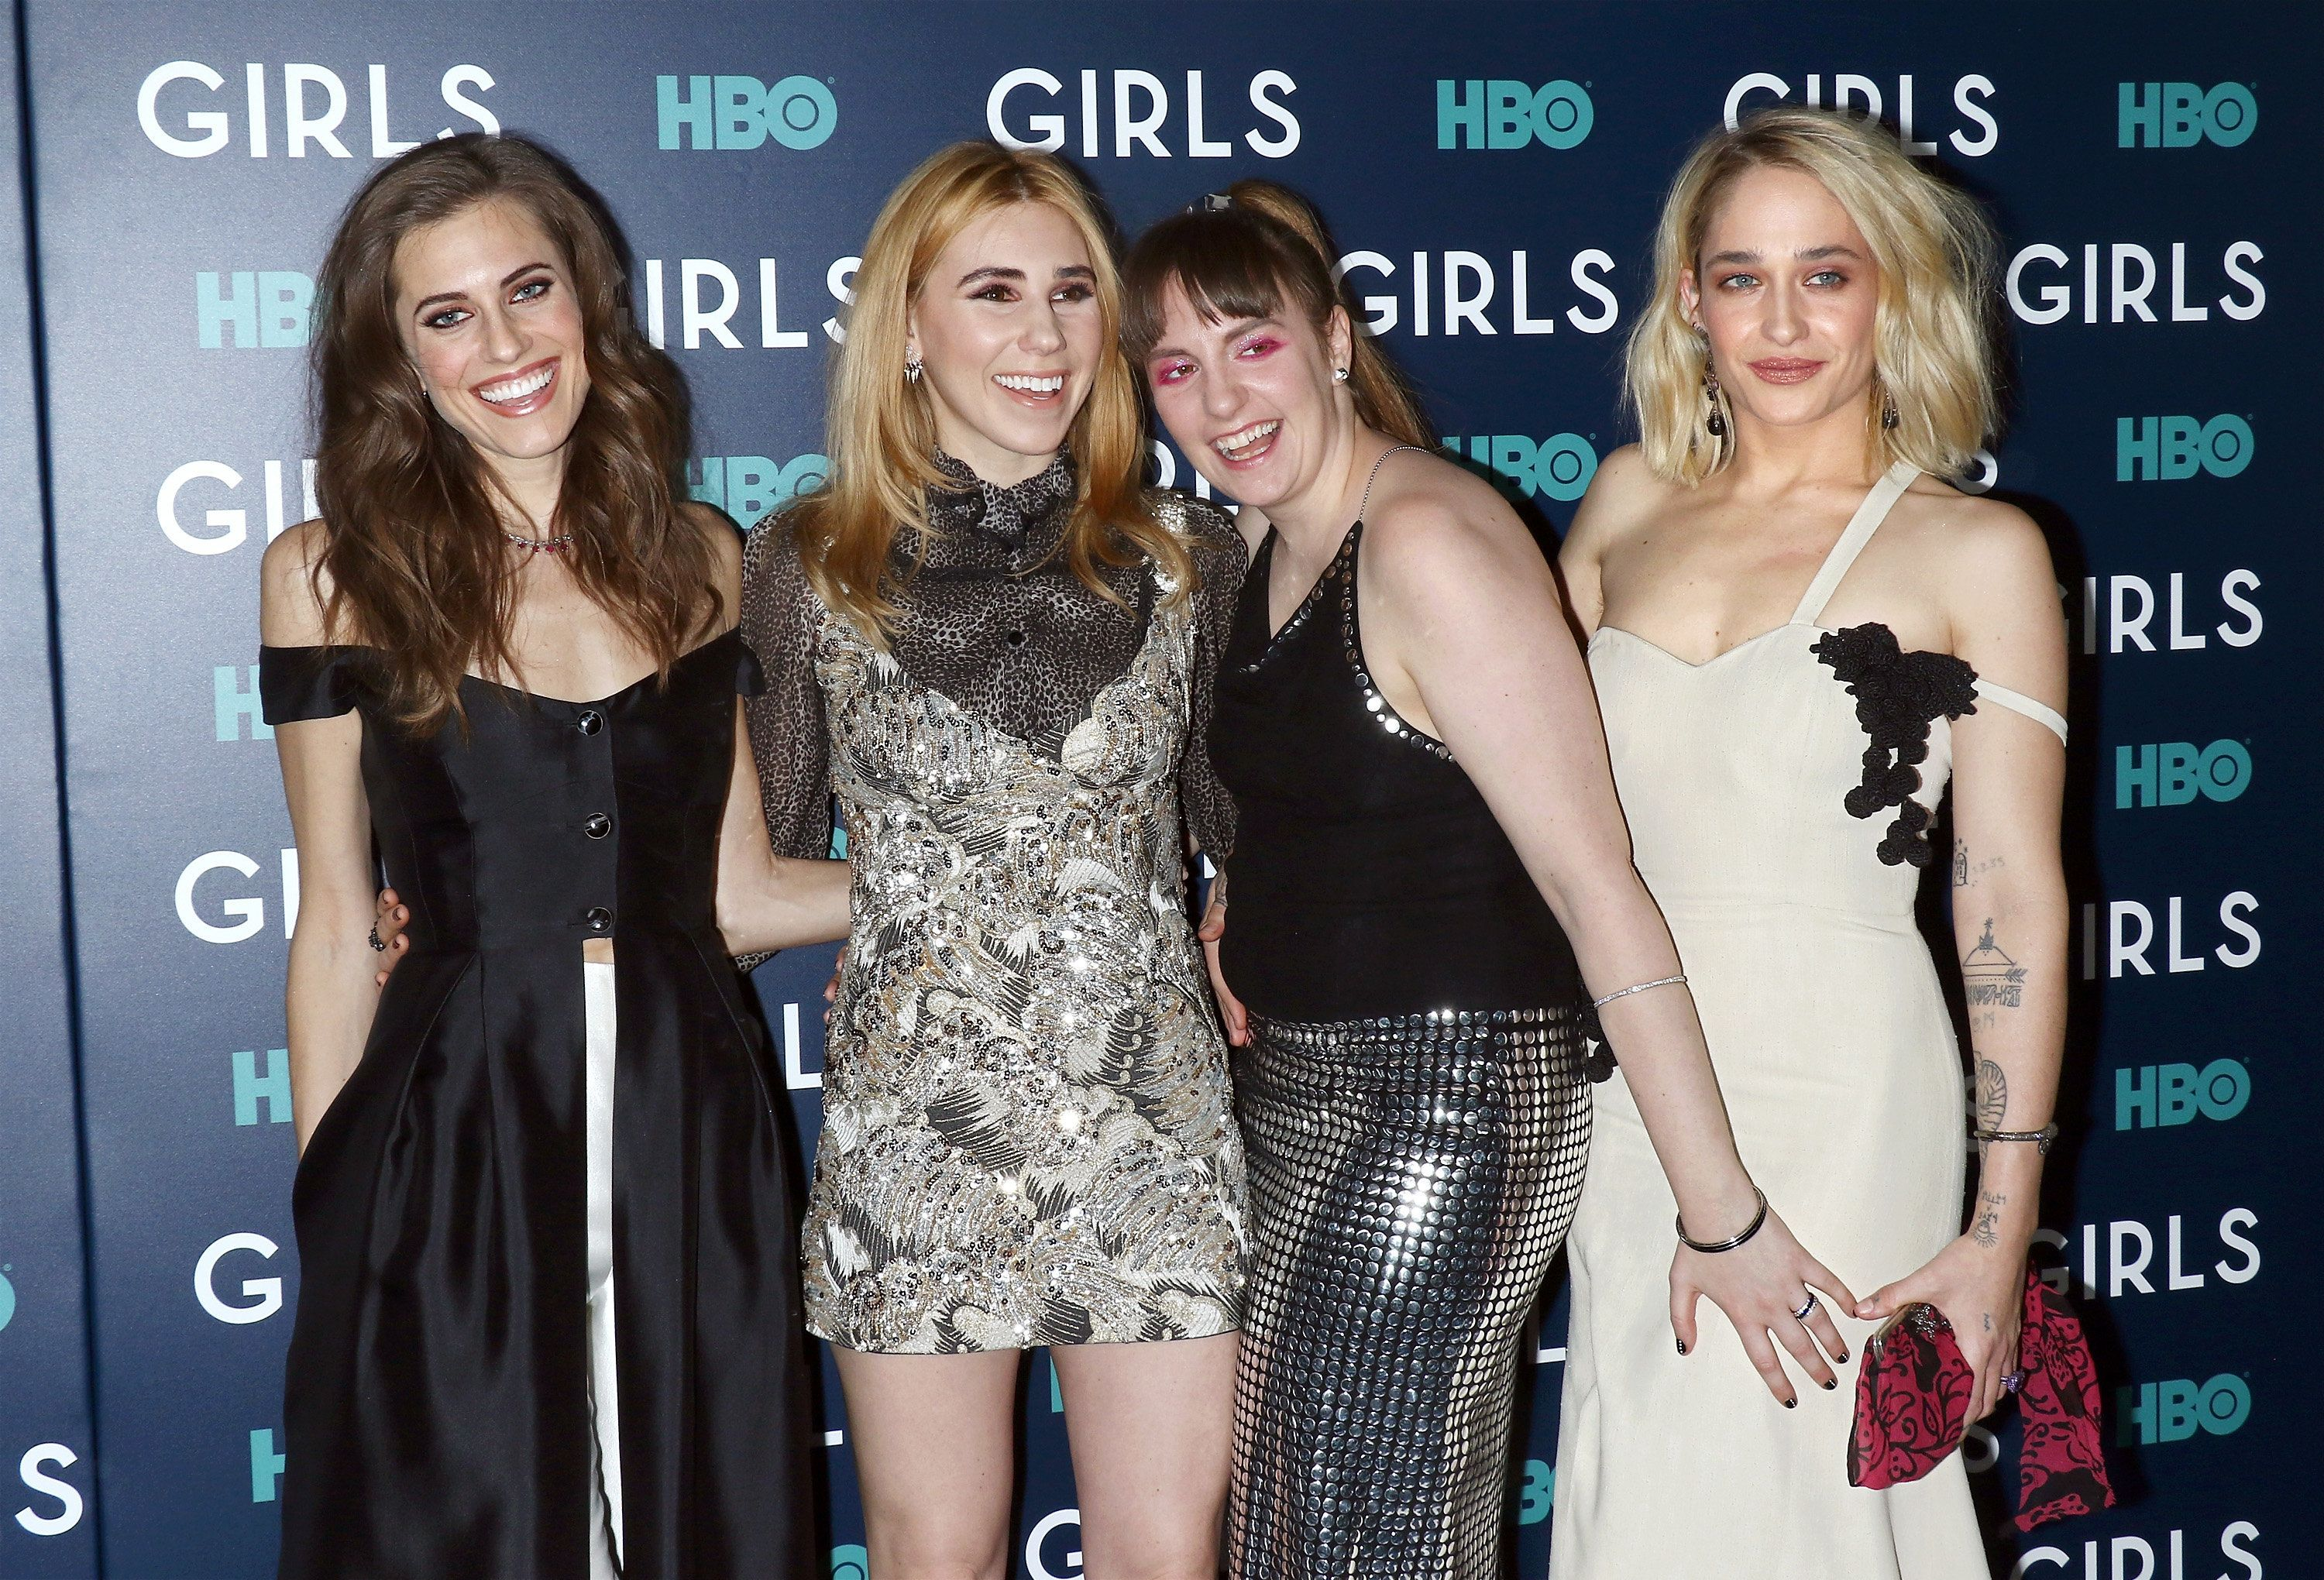 NEW YORK, NY - FEBRUARY 02:  (L-R) Actresses Allison Williams, Zosia Mamet, Lena Dunham and Jemima Kirke attend the the New York premiere of the sixth and final season of 'Girls' at Alice Tully Hall, Lincoln Center on February 2, 2017 in New York City.  (Photo by Jim Spellman/WireImage)